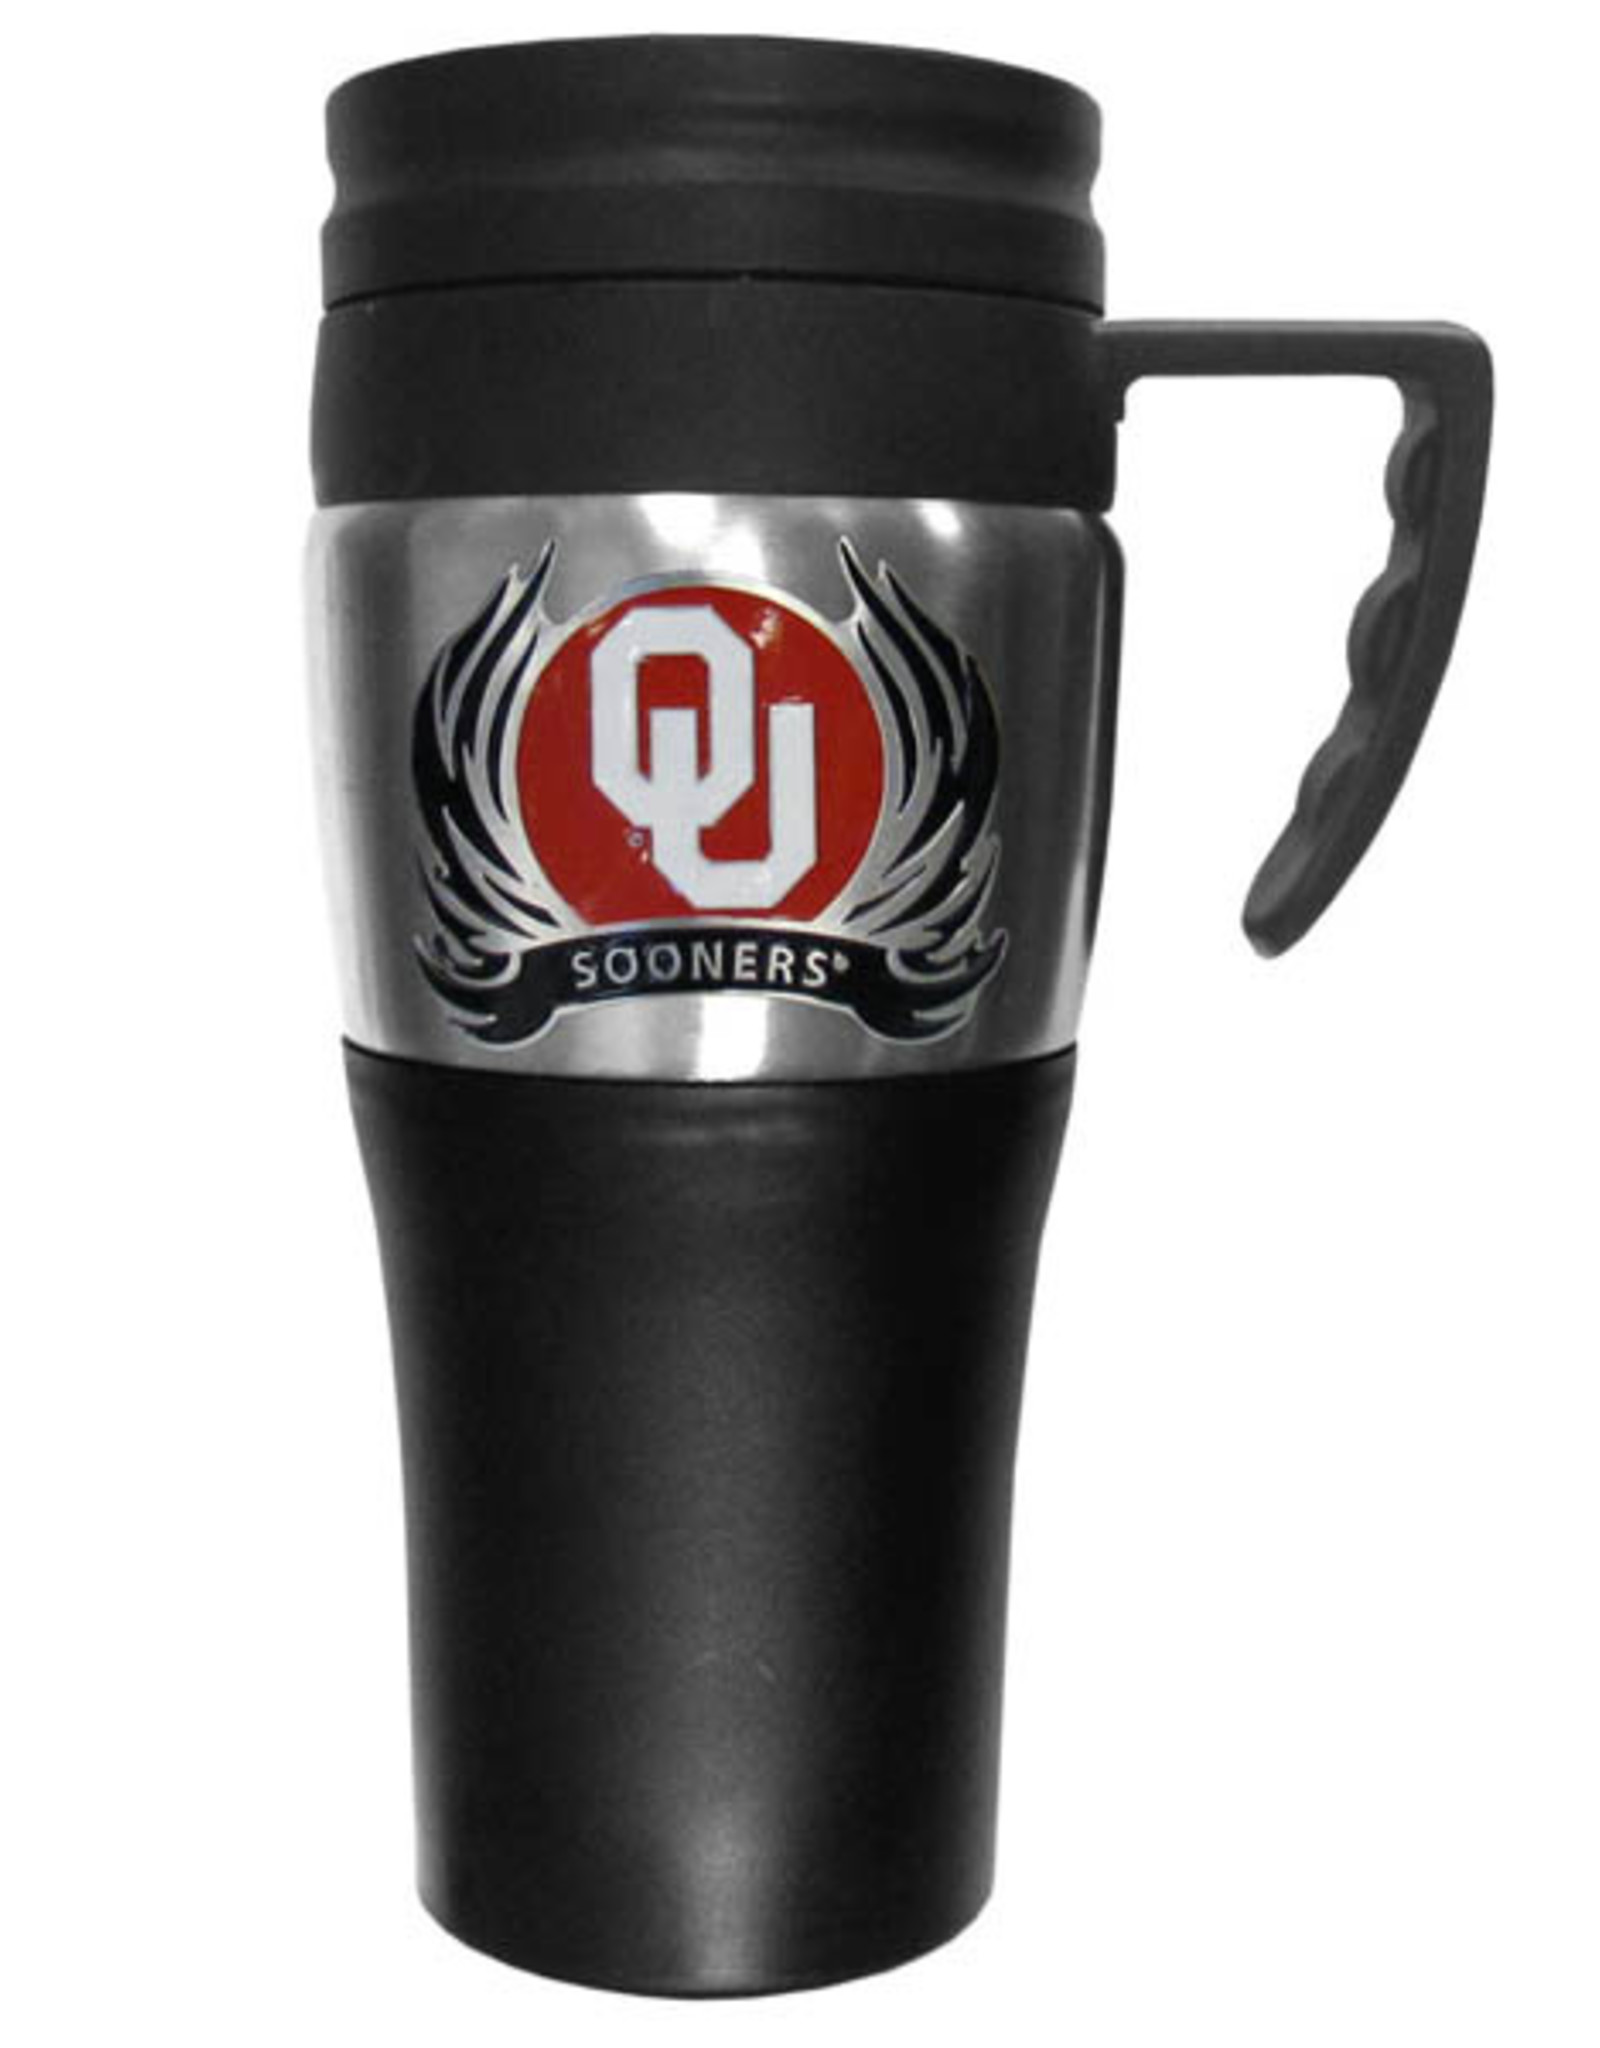 Siskiyou OU Sooners Plastic Travel Mug w/ Handle